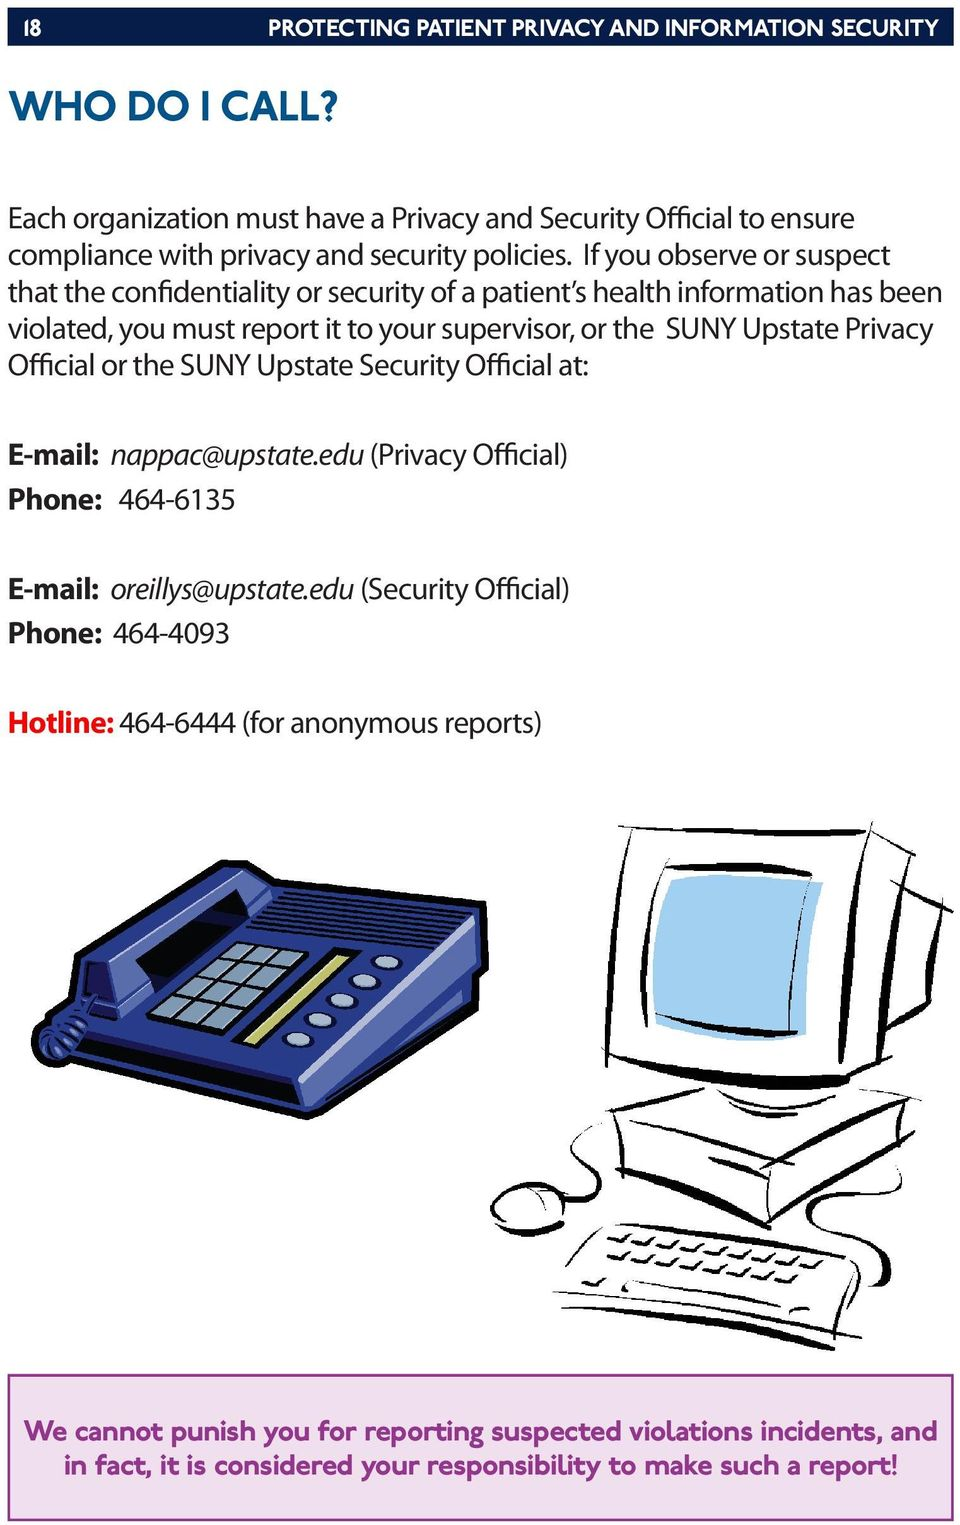 If you observe or suspect that the confidentiality or security of a patient s health information has been violated, you must report it to your supervisor, or the SUNY Upstate Privacy